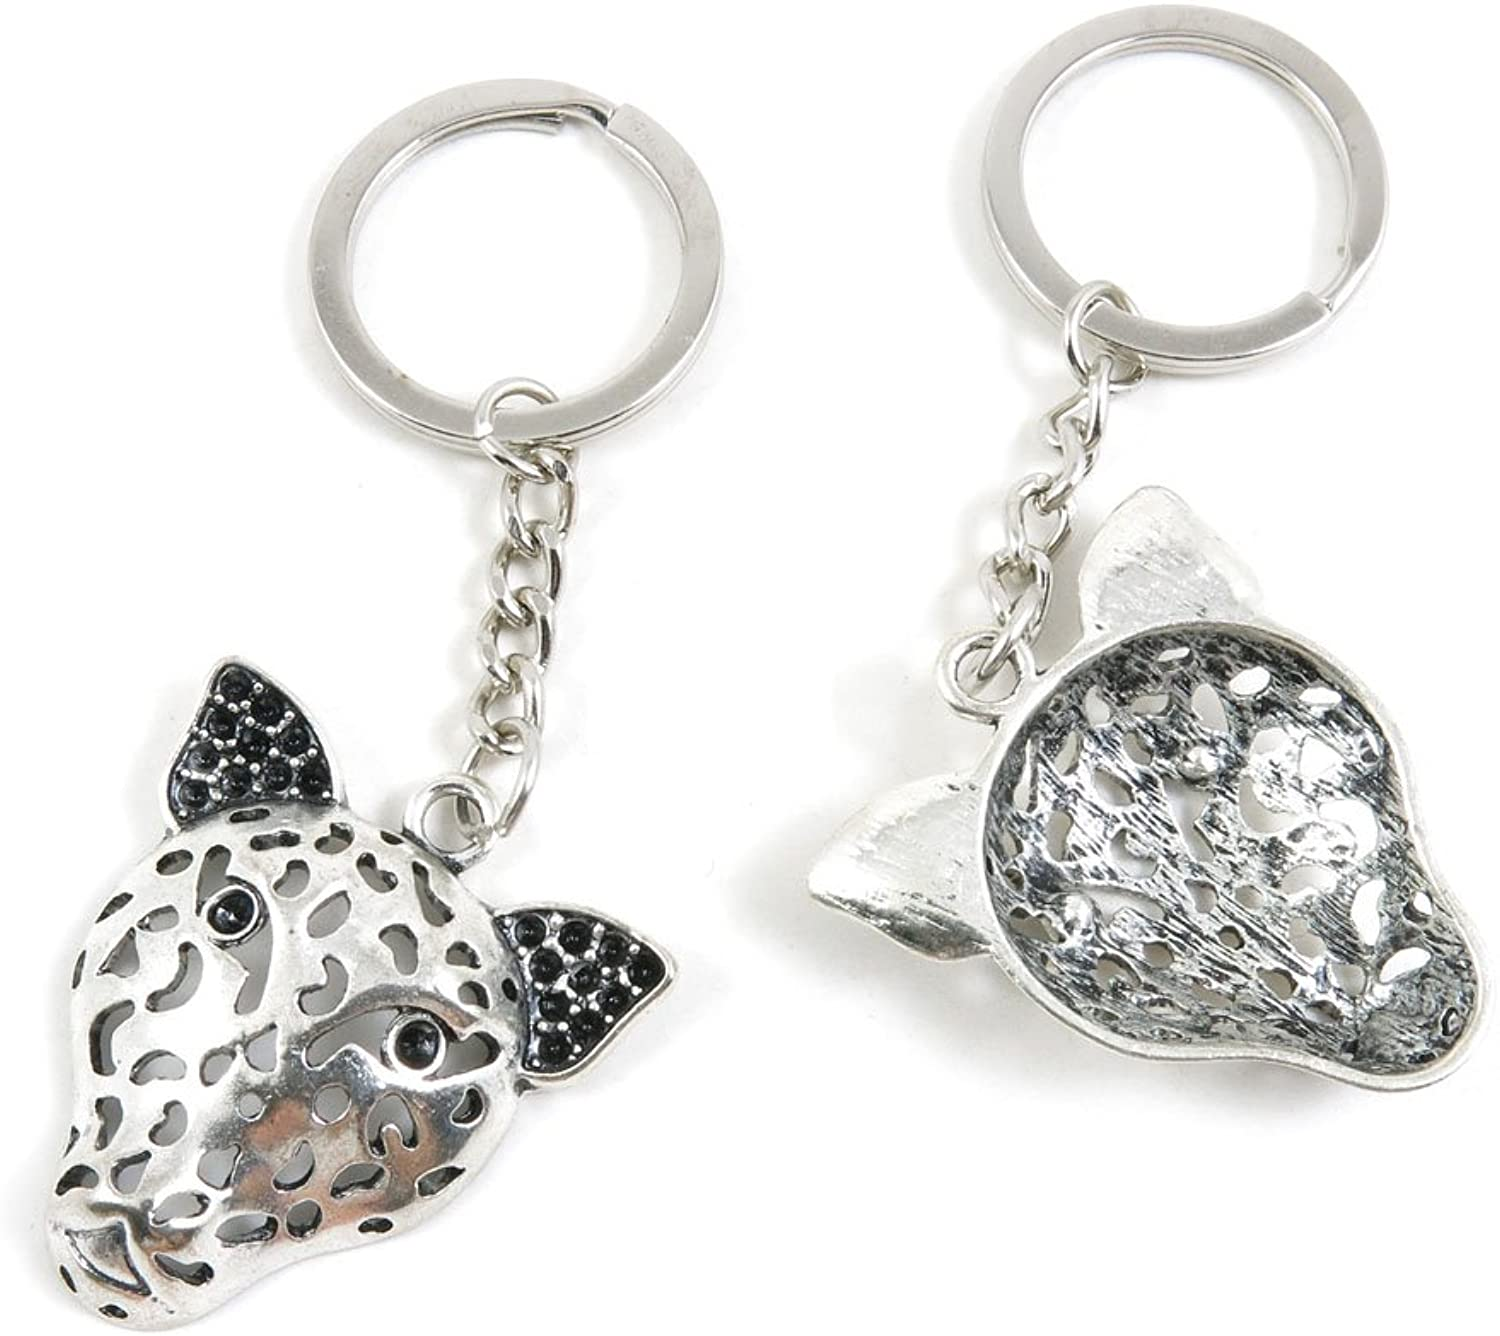 50 Pieces Keychain Keyring Door Car Key Chain Ring Tag Charms Bulk Supply Jewelry Making Clasp Findings Q3CI5T Leopard Head